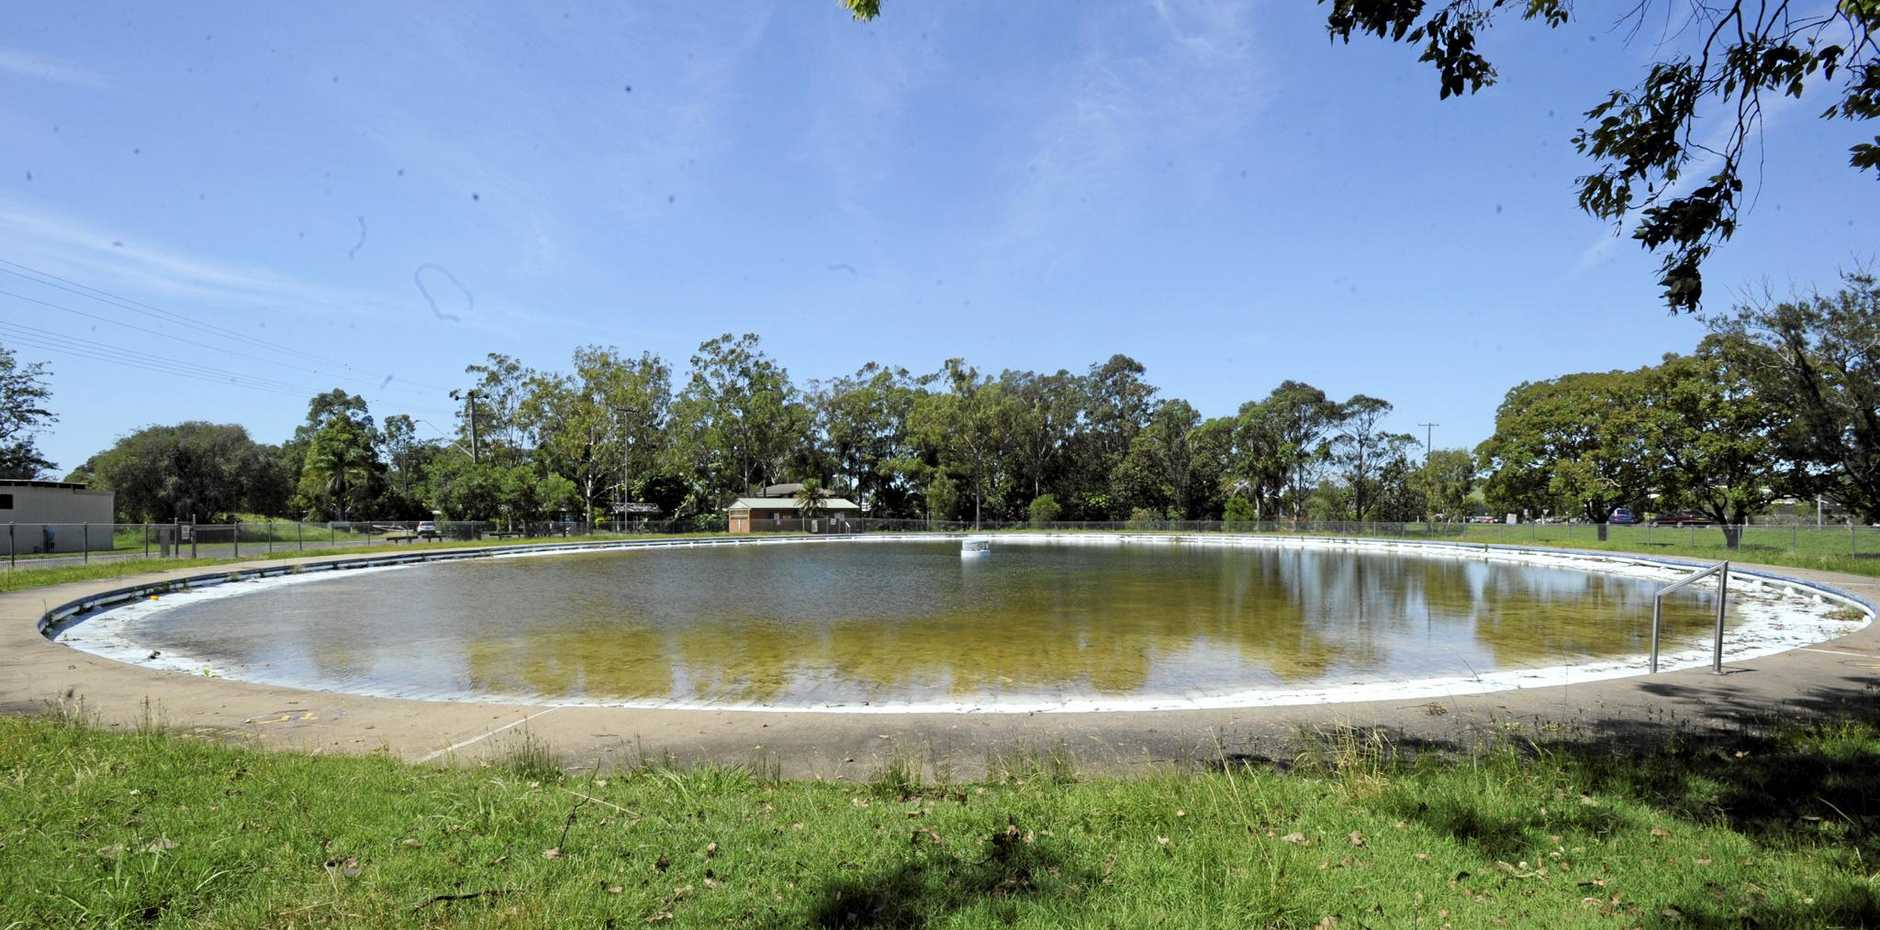 SUPPORT NEEDED: The future of the Lismore Lake Pool is in the hands of the community now, according to councillors.